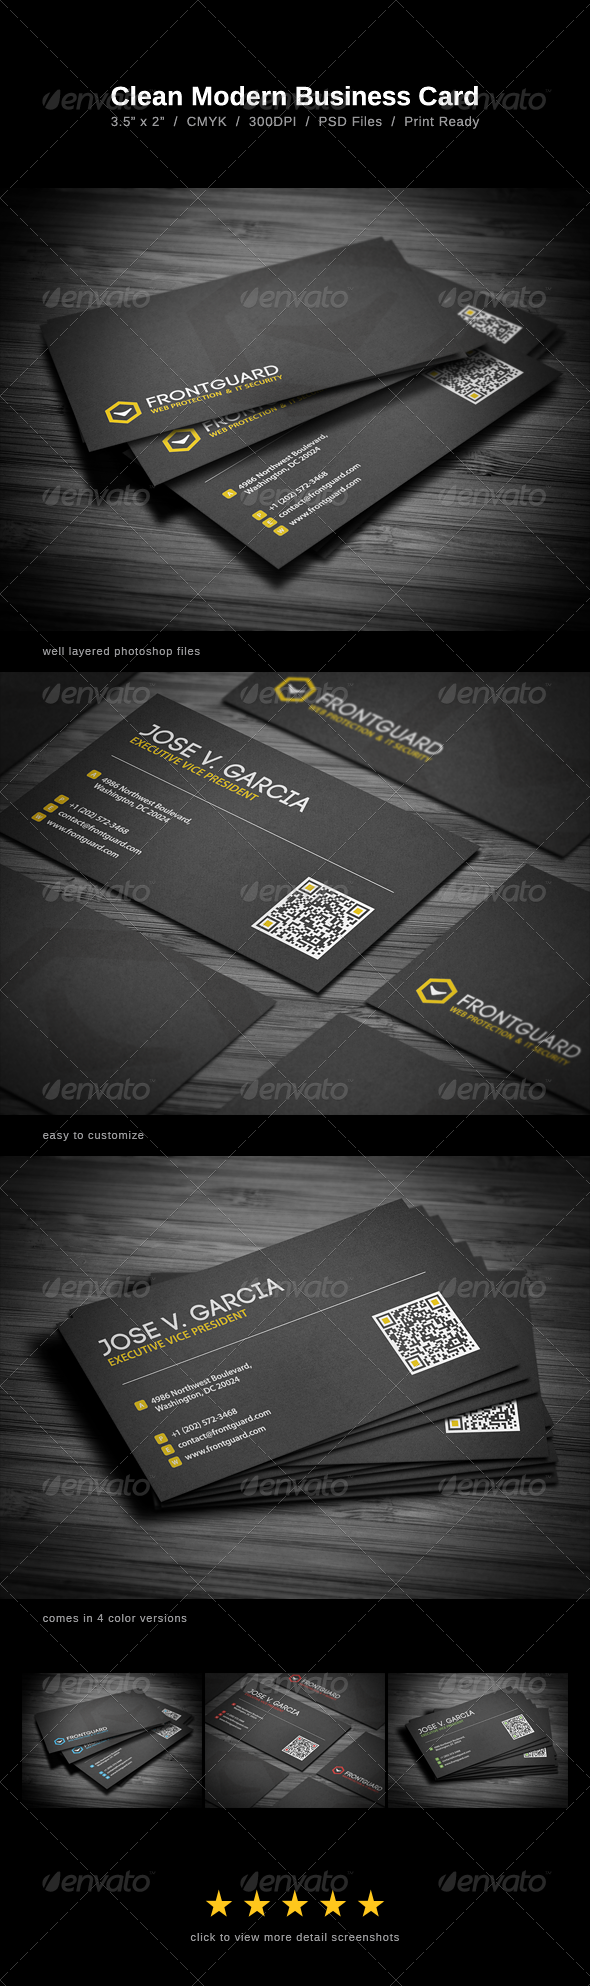 Clean Modern Business Card - Corporate Business Cards